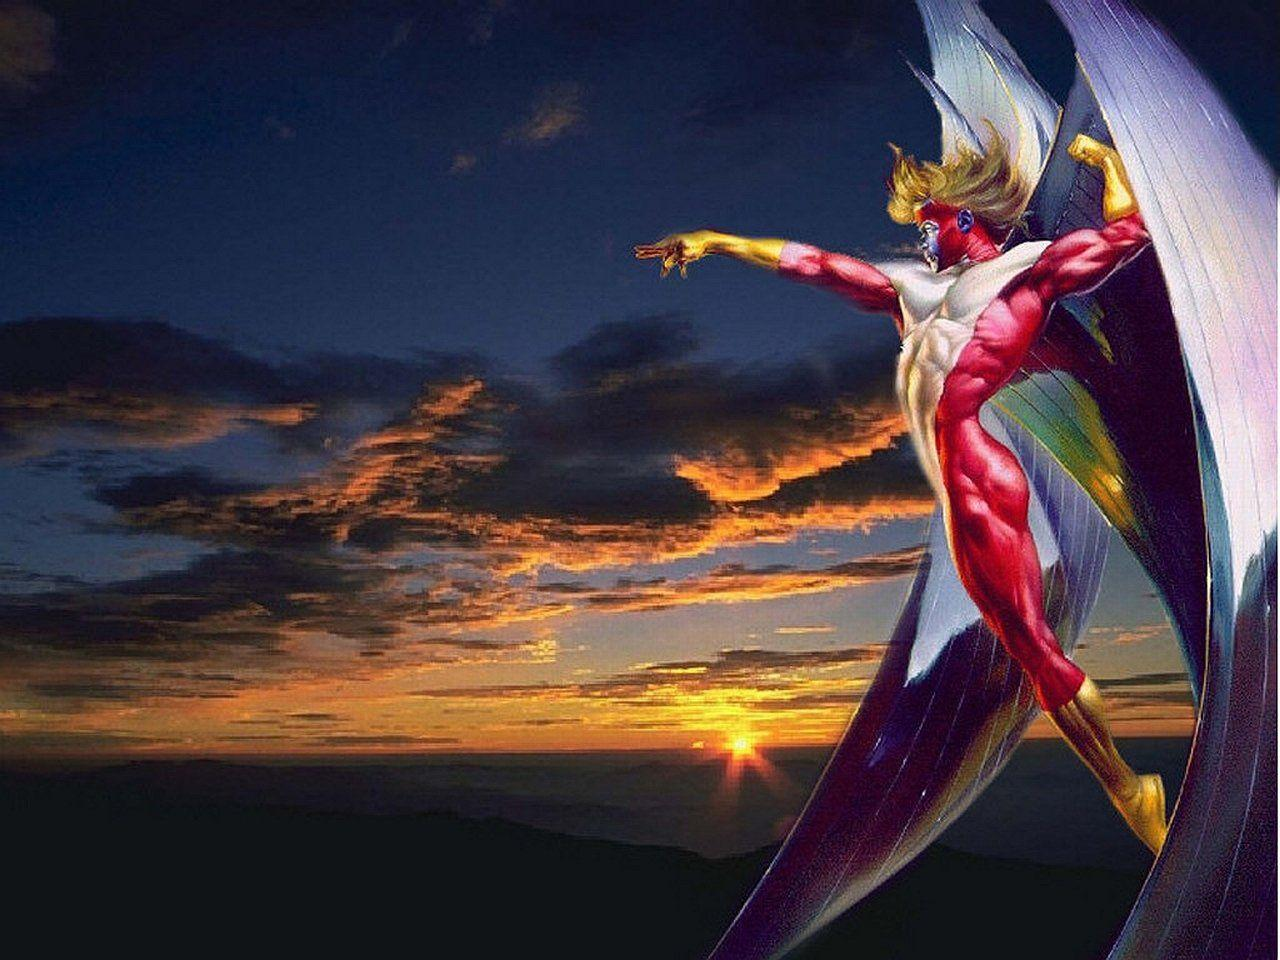 Archangel Wallpaper and Background Image | 1280x960 | ID:232129 ...